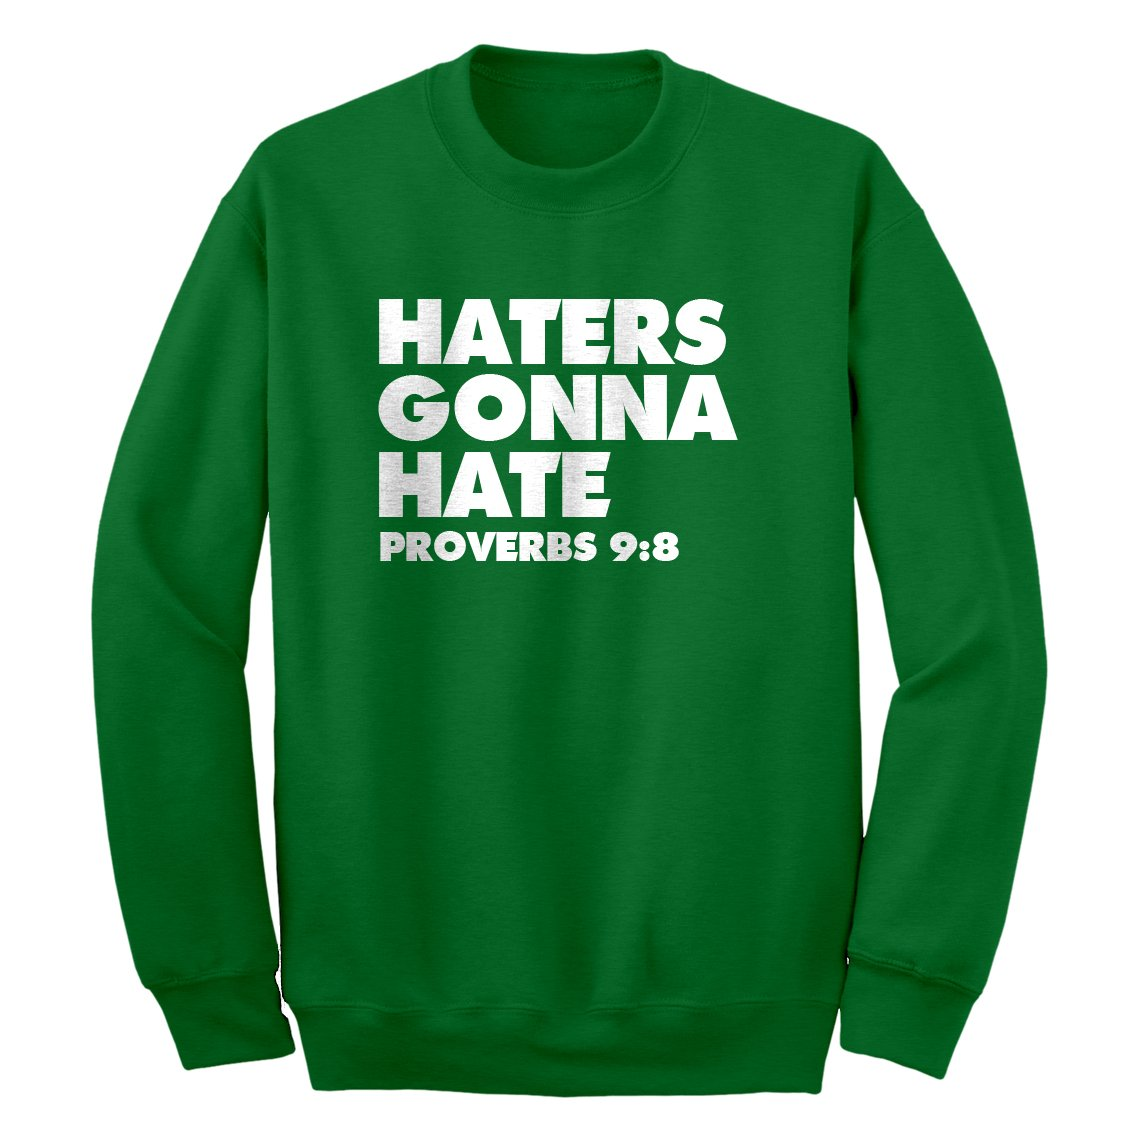 Indica Plateau Haters Gonna Hate Proverbs 9:8 Sweatshirt 7005-C